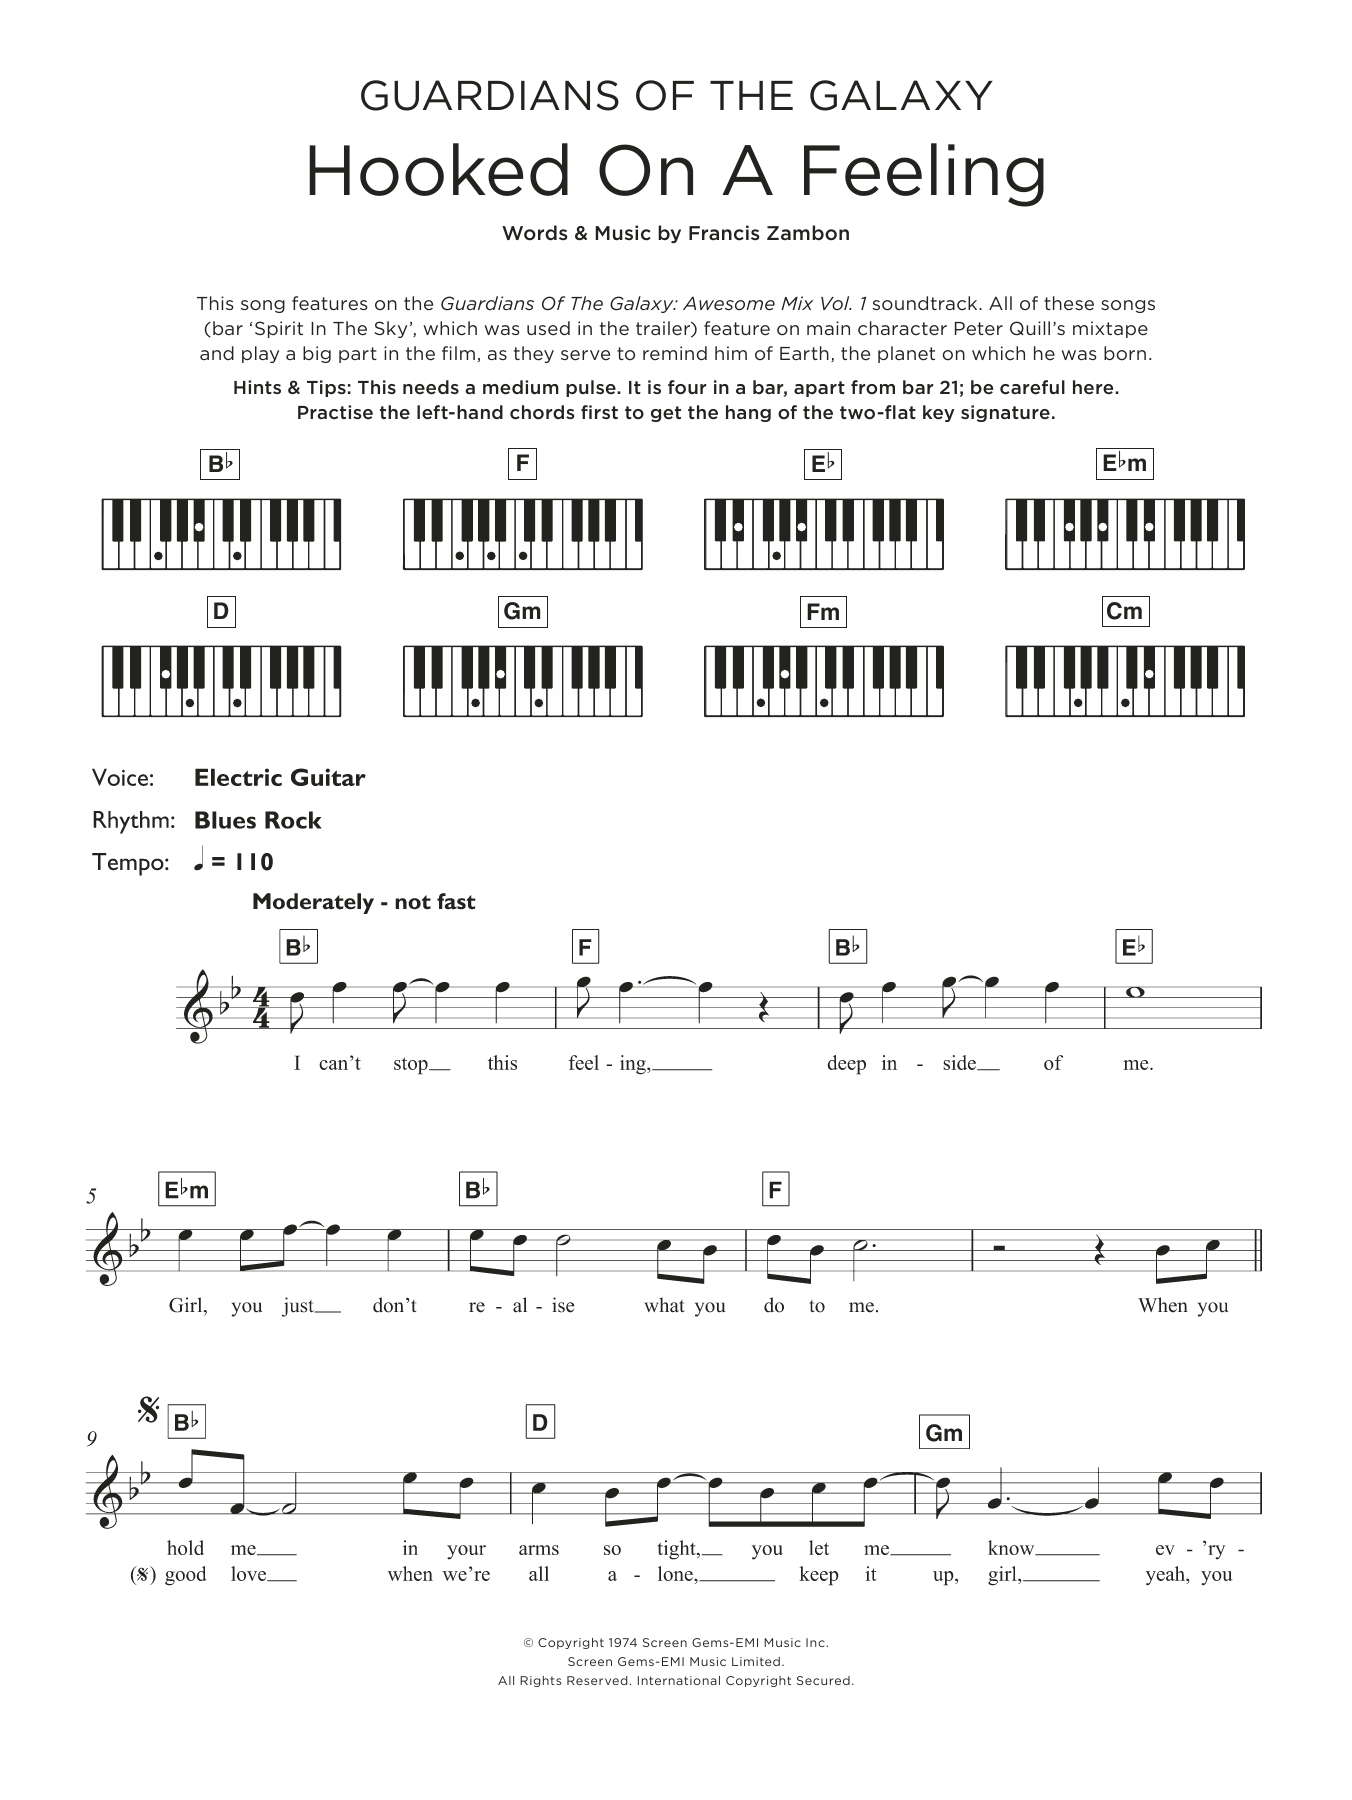 Hooked On A Feeling Sheet Music